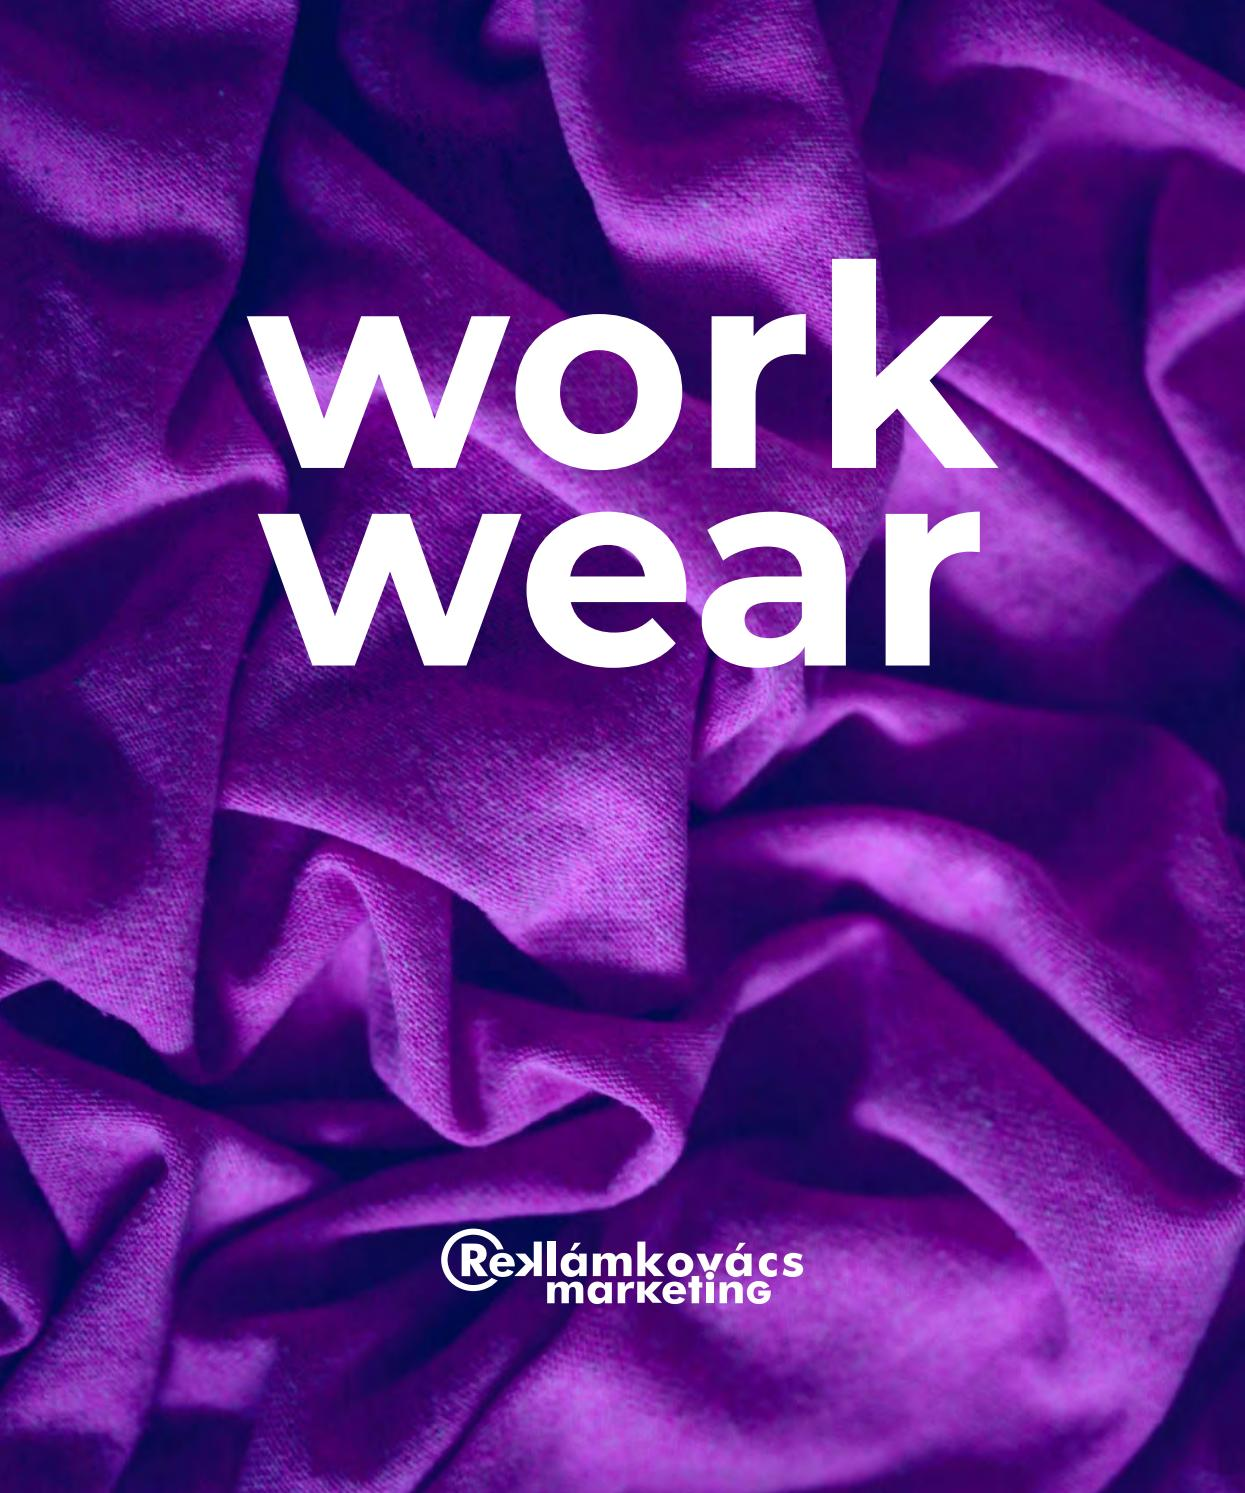 Reklamkovacs Marketing Workwear Katalogus 2020 By Reklamkovacs Marketing Issuu